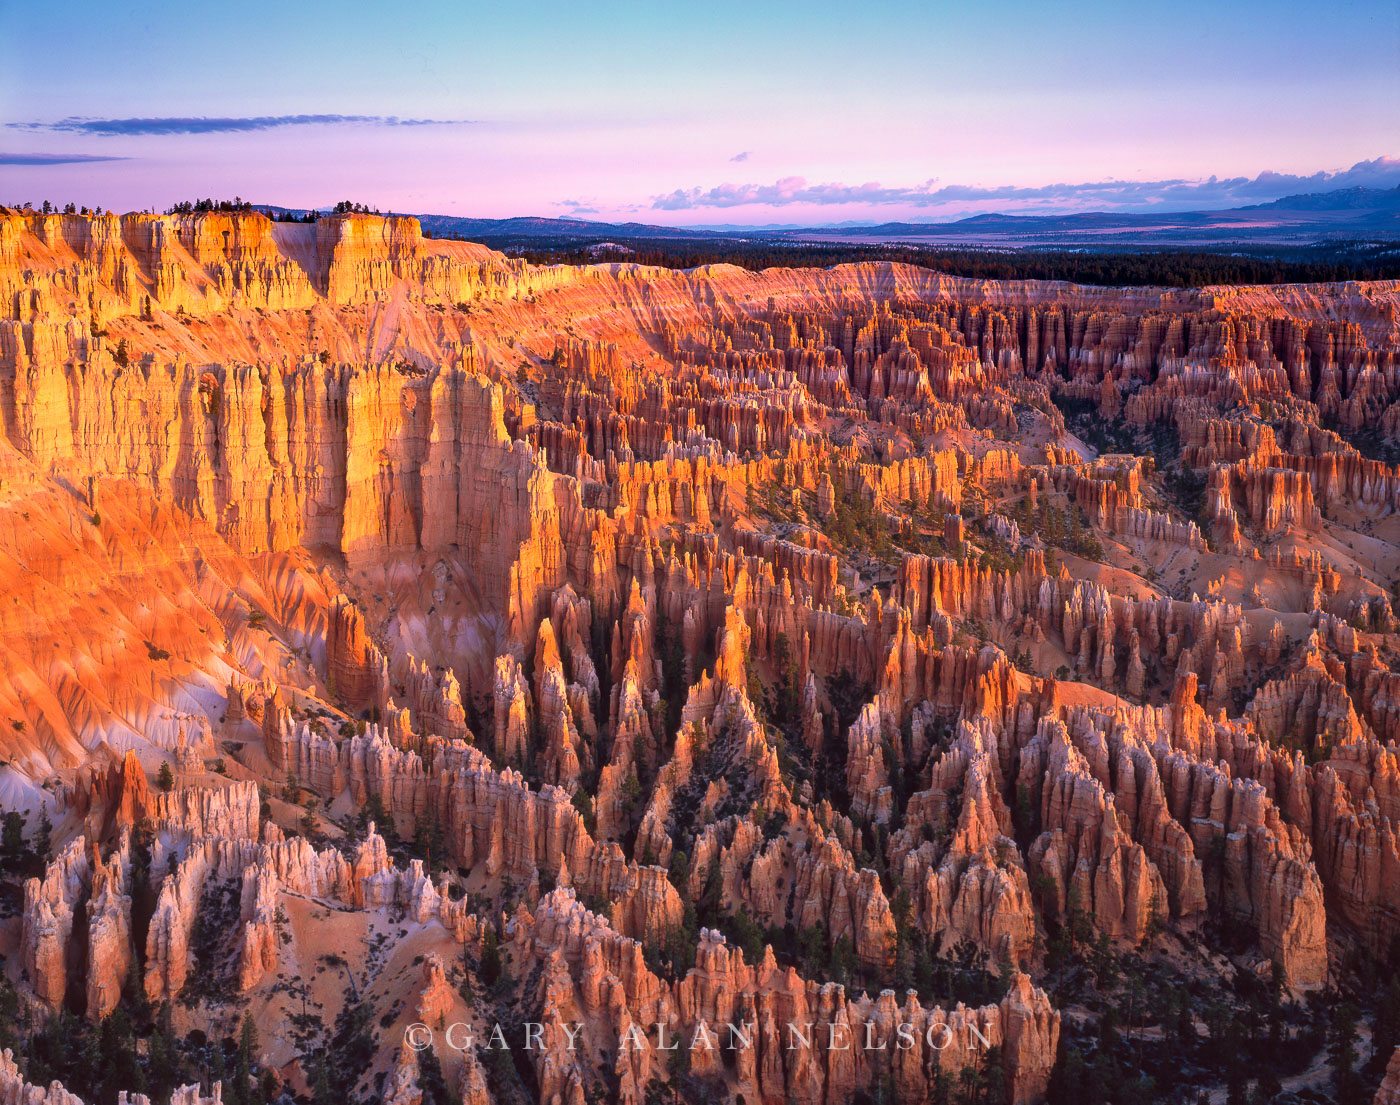 Bryce Canyon National Park, Utah, hoodoos, photo